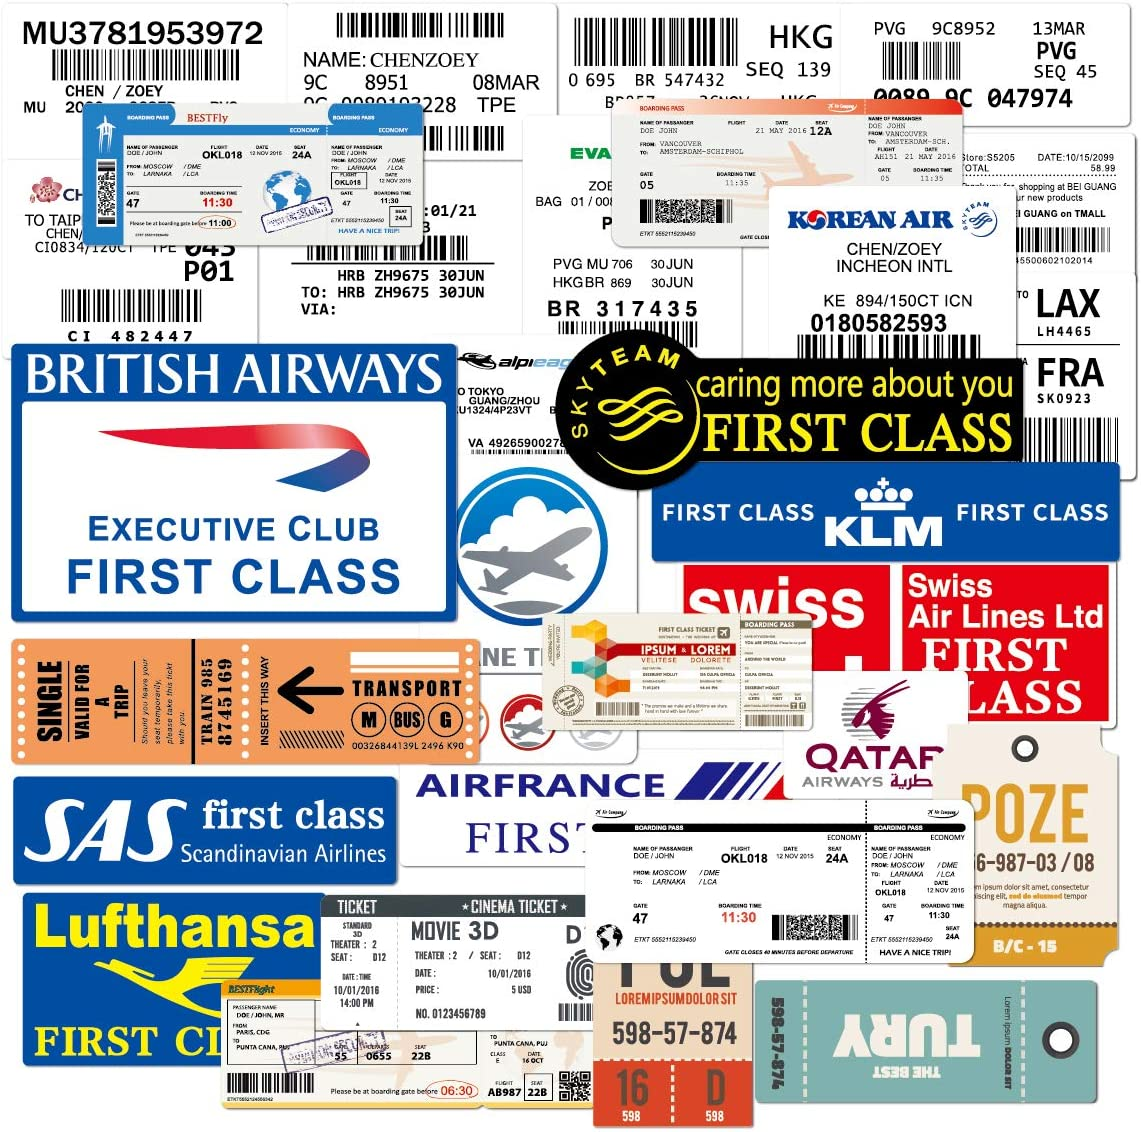 Water Bottle Airline Stickers Boarding Check Air Ticket Stickers Laptop Stickers Pack 30 Pcs Decals for Water Bottle Laptops Ipad Cars Luggages